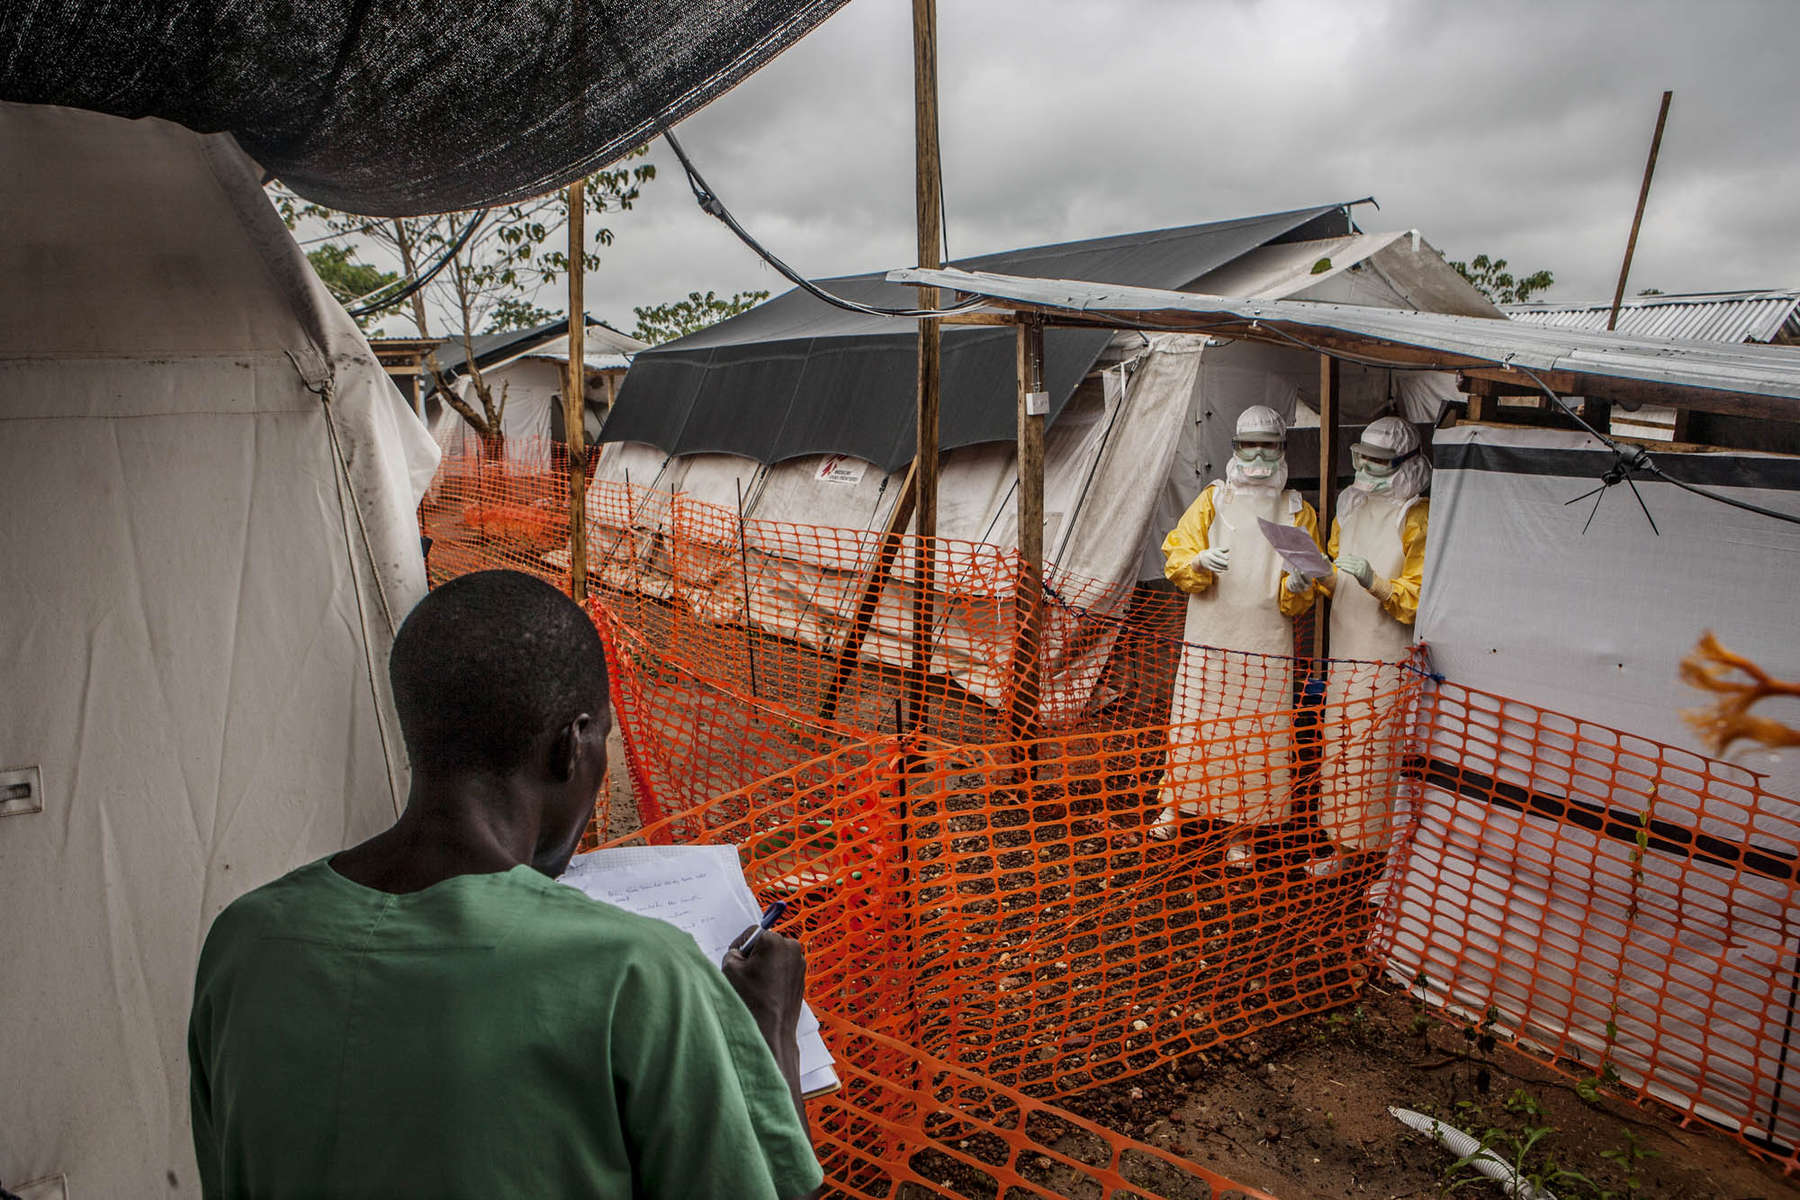 Doctors Without Borders medical staff discuss patient status across an established safety cordon in an Ebola treatment center in Kailahun, Sierra Leone on Sunday, August 17, 2014. Those in masks stand in the {quote}high risk{quote} zone where highly contagious Ebola victims receive treatment. (Pete Muller/Prime for the Washington Post)